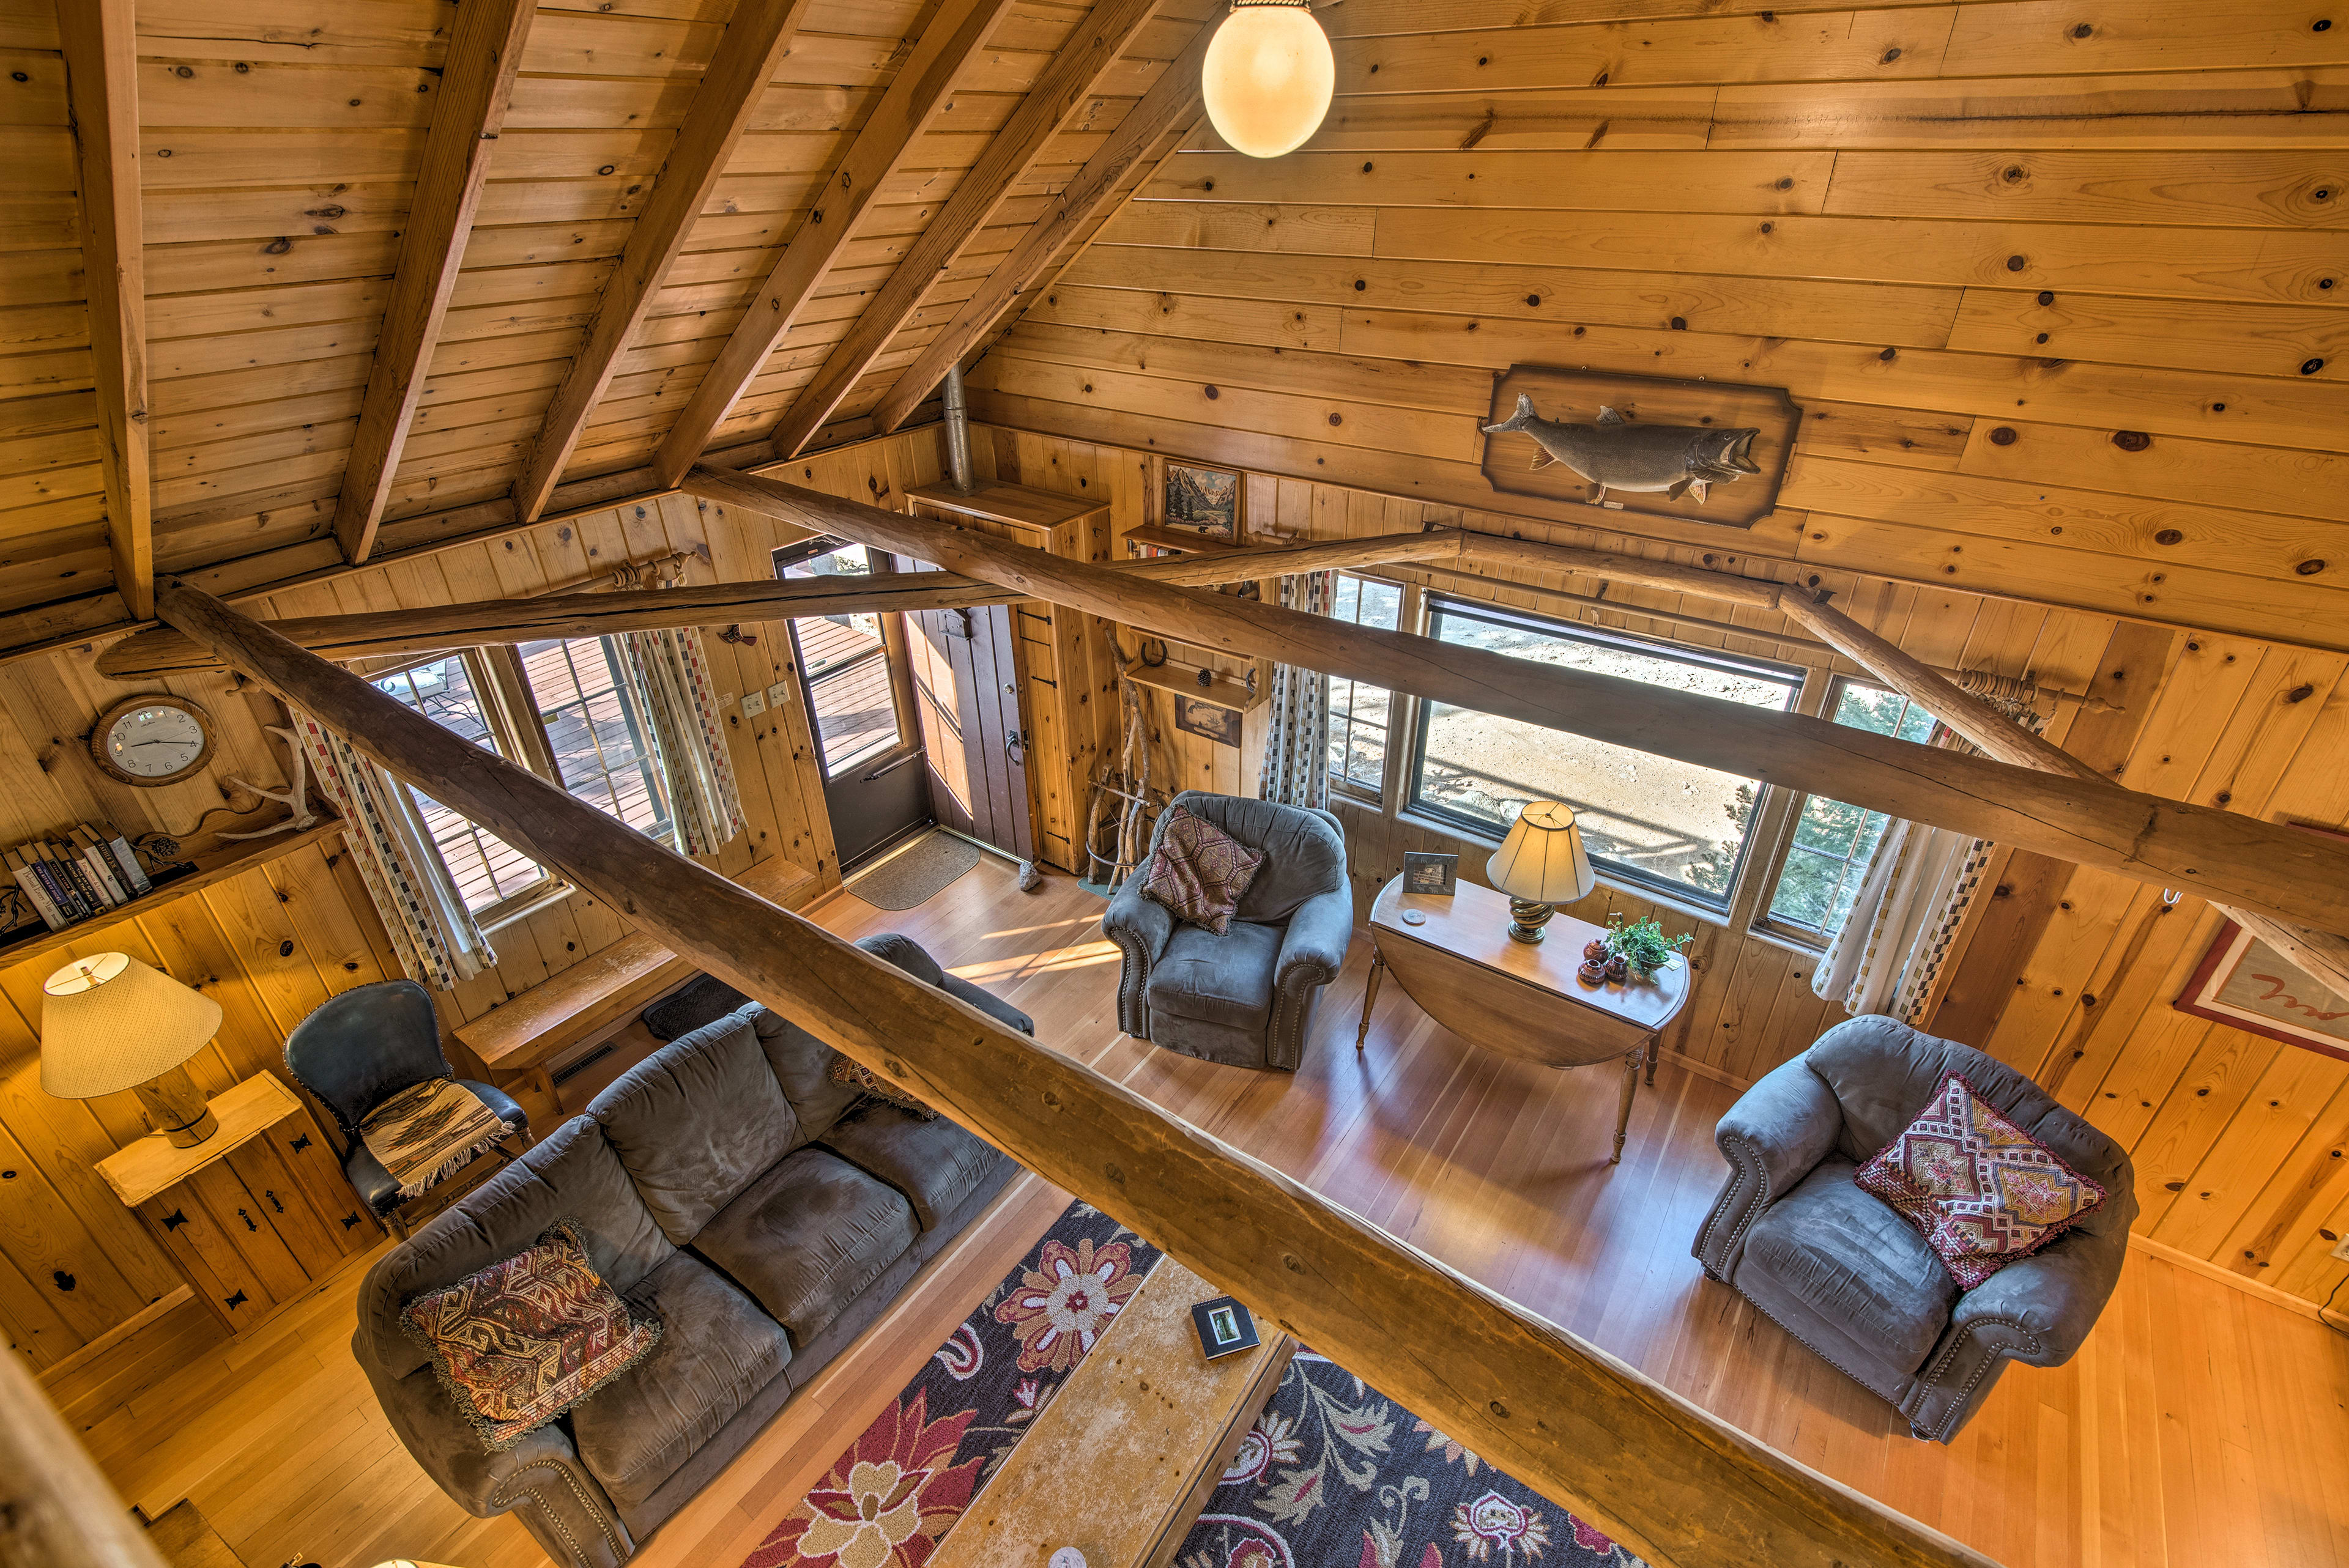 Enjoy a bird's-eye view of the cabin from the loft.